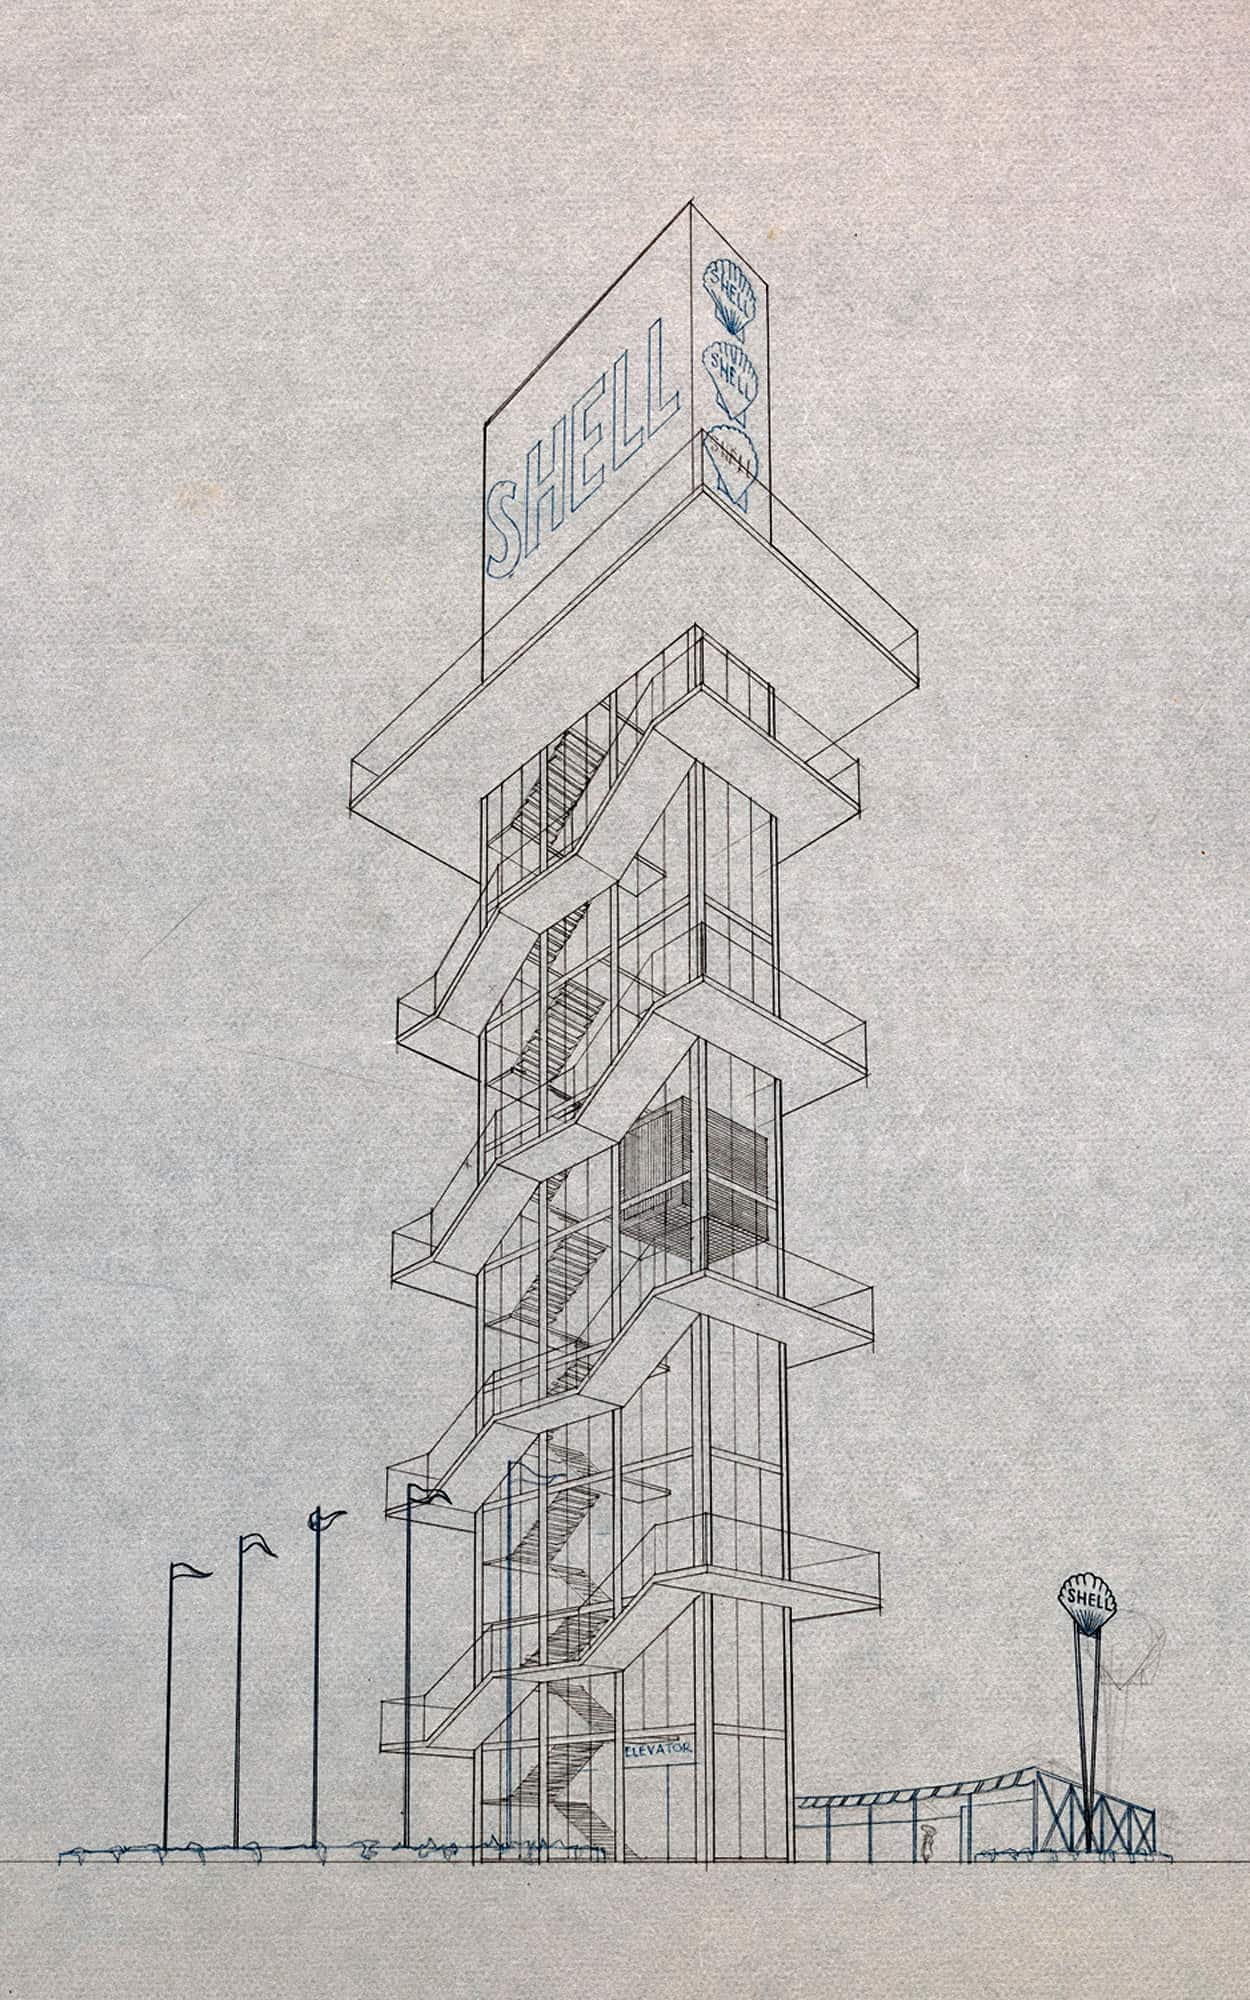 Competition drawing illustrating an external stair wrapping the tower, 1950s (City of Toronto Archives, Fonds 261, Series 1147, File 39, Item 2)